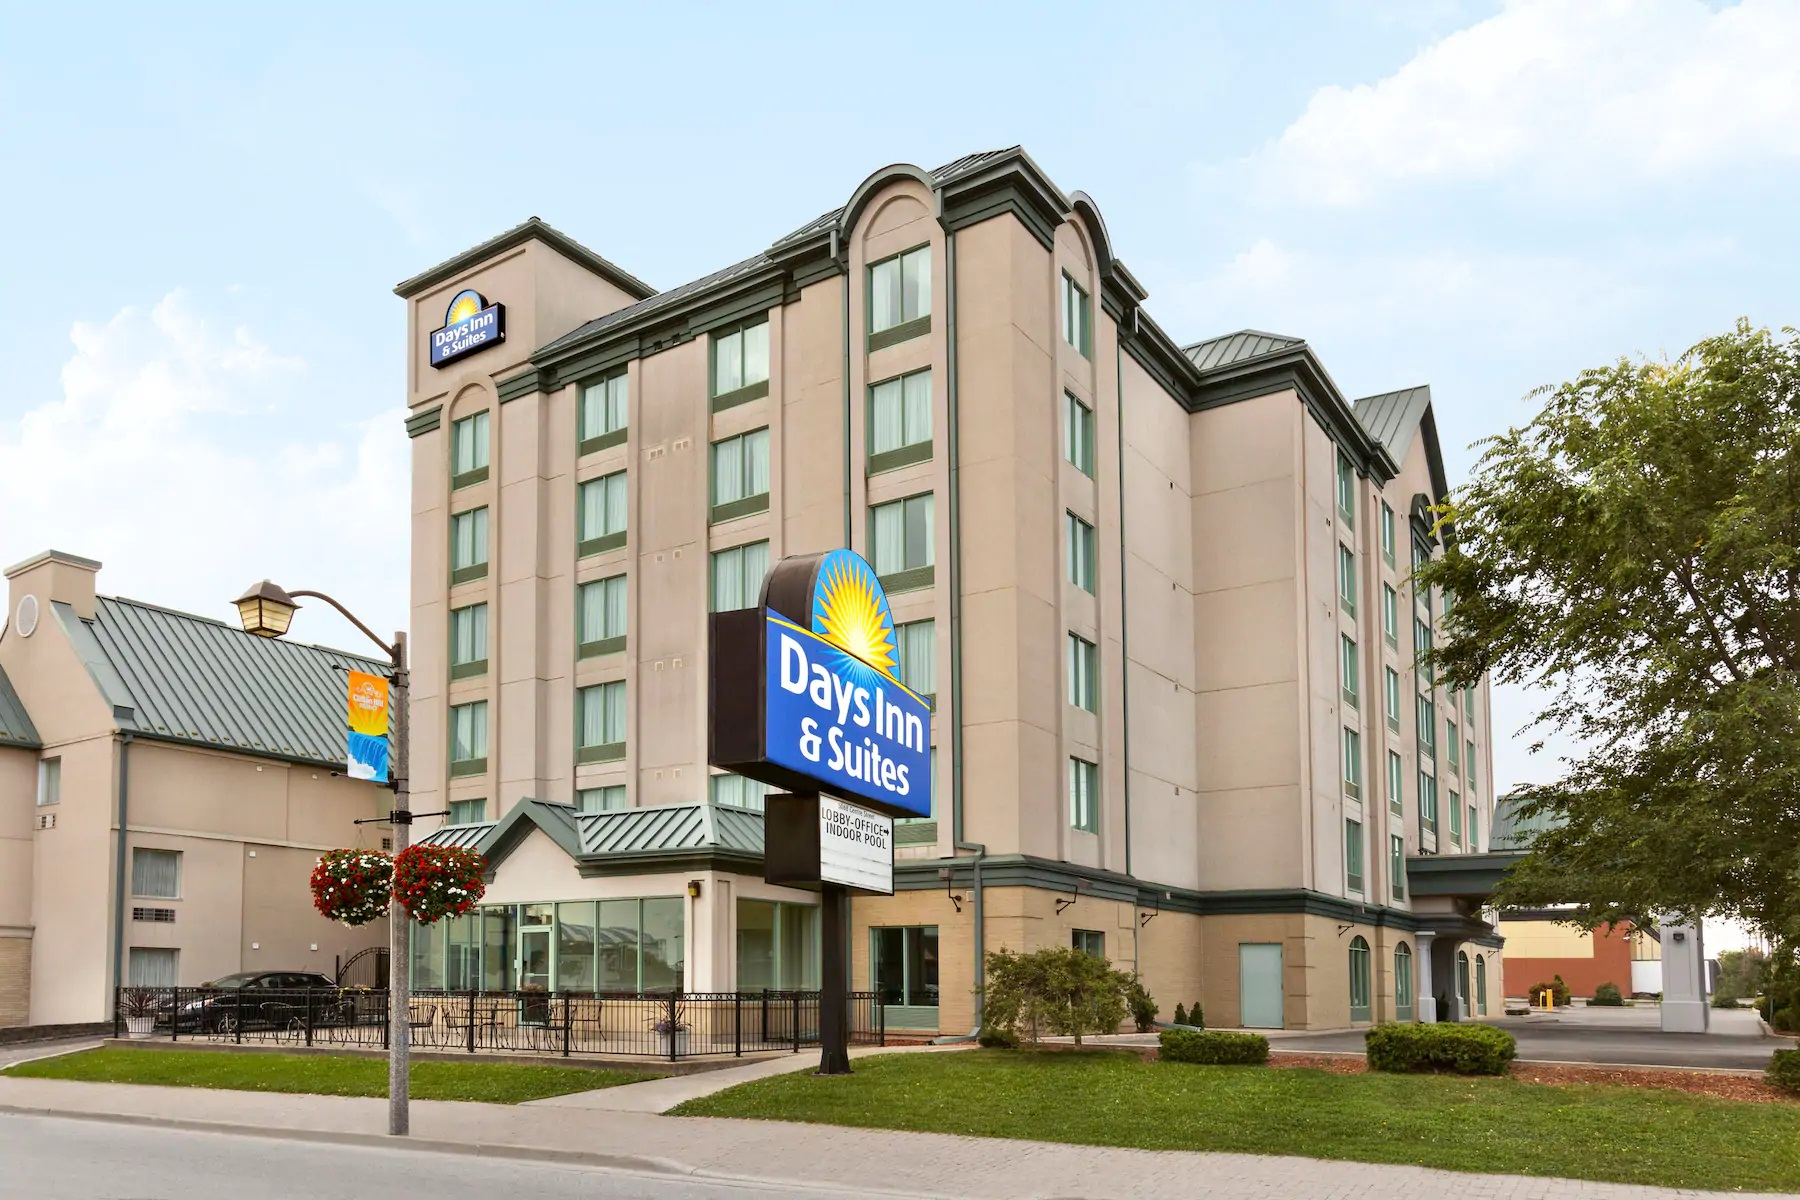 Days Inn & Suites Niagara Falls Centre Street